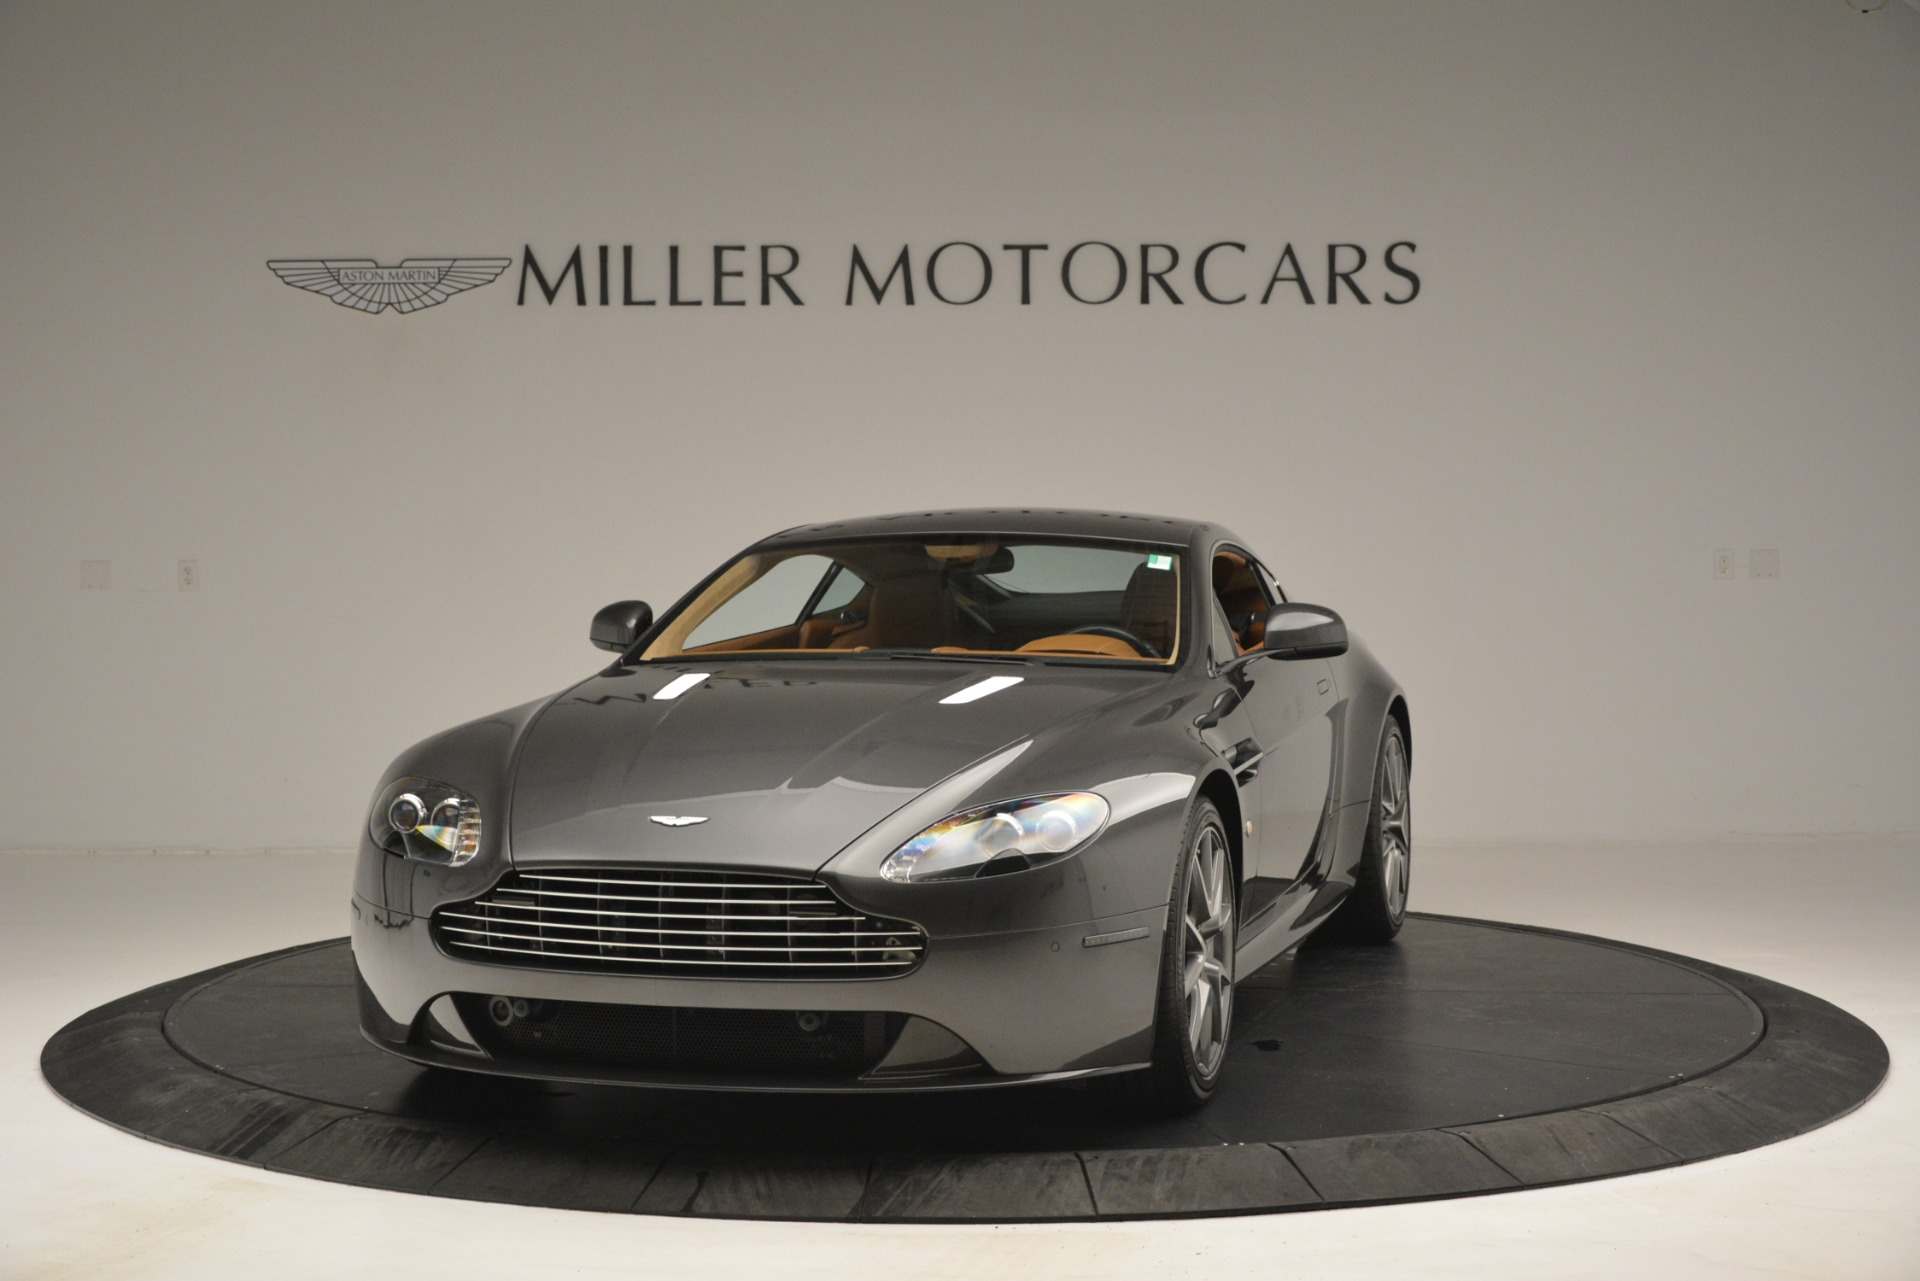 Used 2012 Aston Martin V8 Vantage S Coupe for sale Sold at McLaren Greenwich in Greenwich CT 06830 1